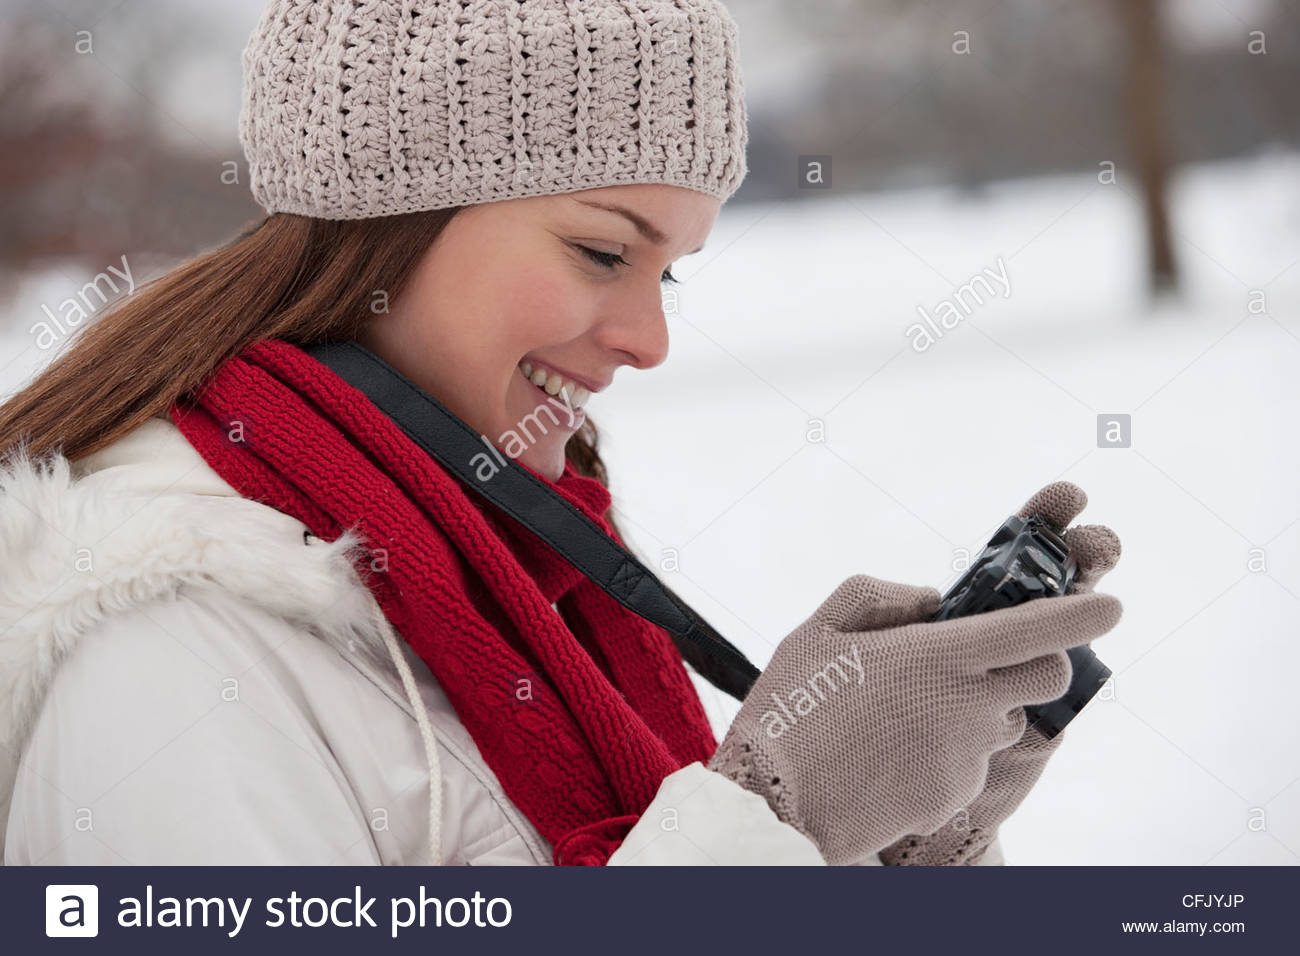 A young woman standing in the snow, looking at her camera - Stock Image